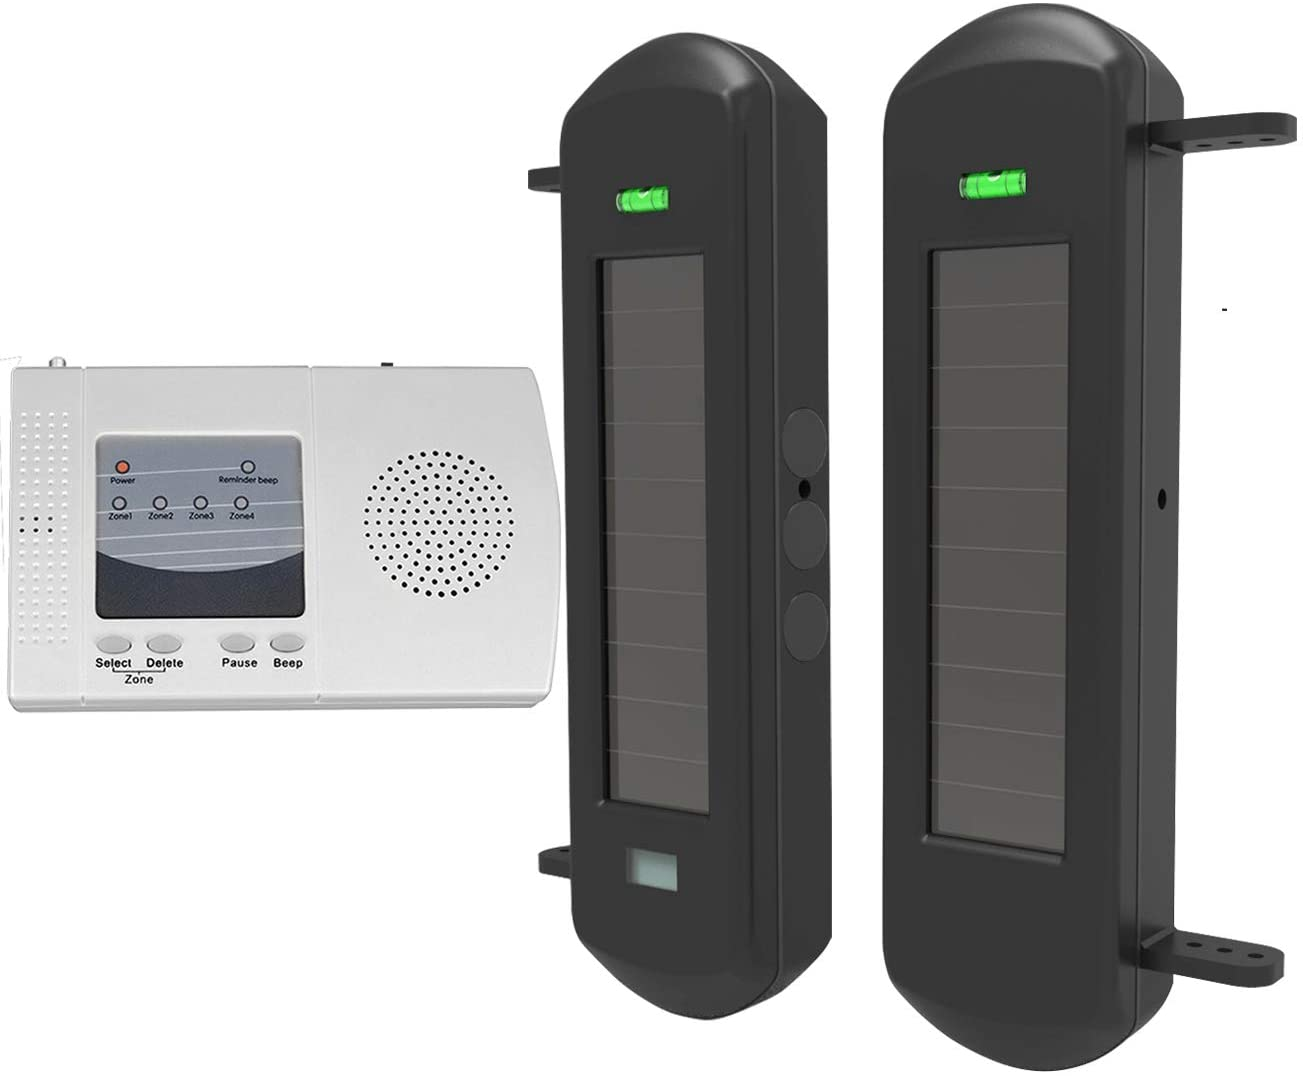 HTZSAFE Solar Wireless Driveway Alarm System-1 2 Mile Long Transmission Range-300 Feet Wide Sensor Range-No Wiring No Need Replace Battery-Outdoor Weatherproof Security Perimeter Alert System KIT